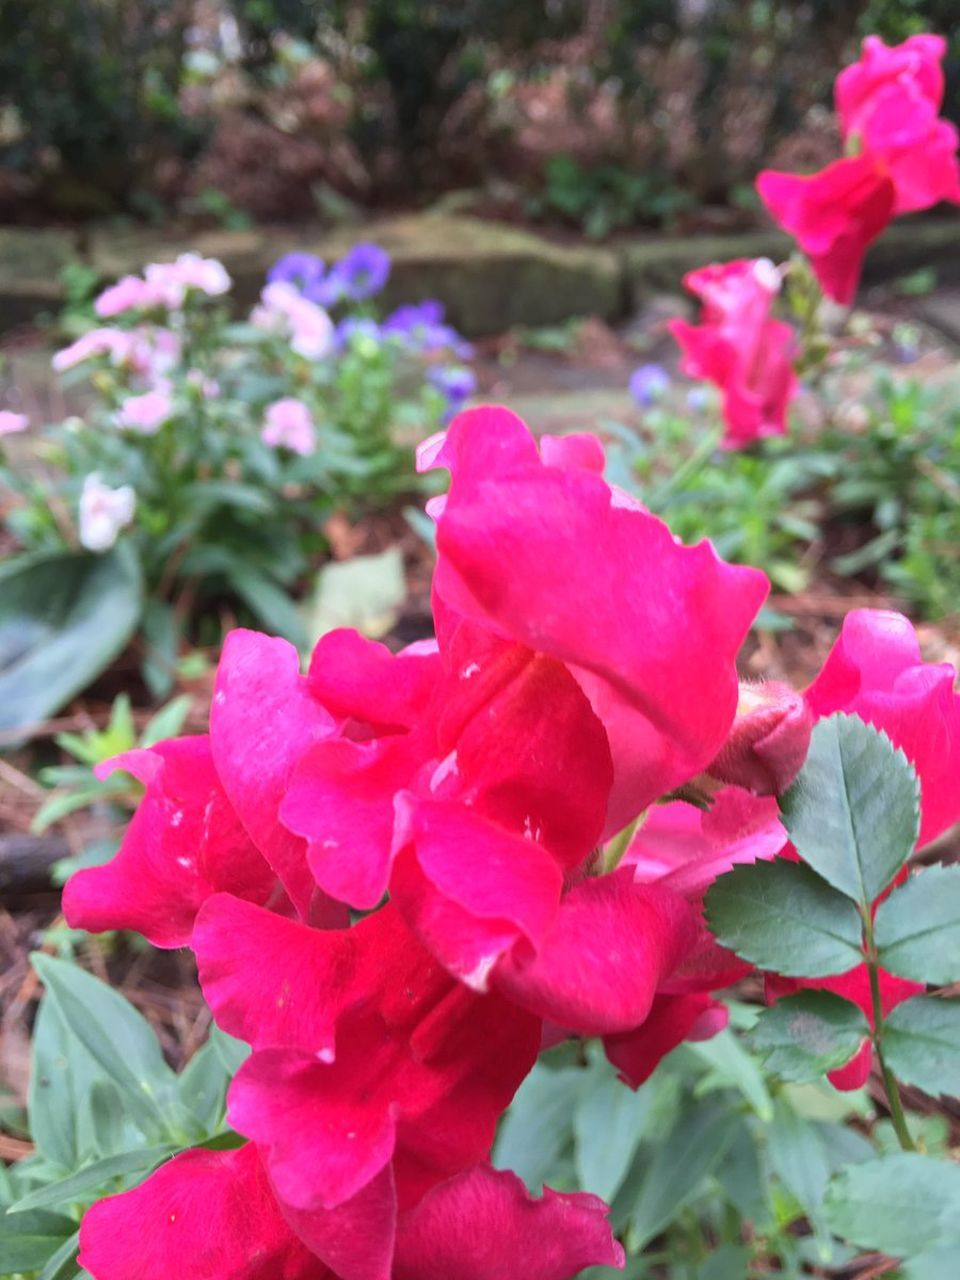 flower, nature, beauty in nature, plant, petal, fragility, growth, outdoors, pink color, day, flower head, no people, blooming, red, freshness, close-up, bougainvillea, petunia